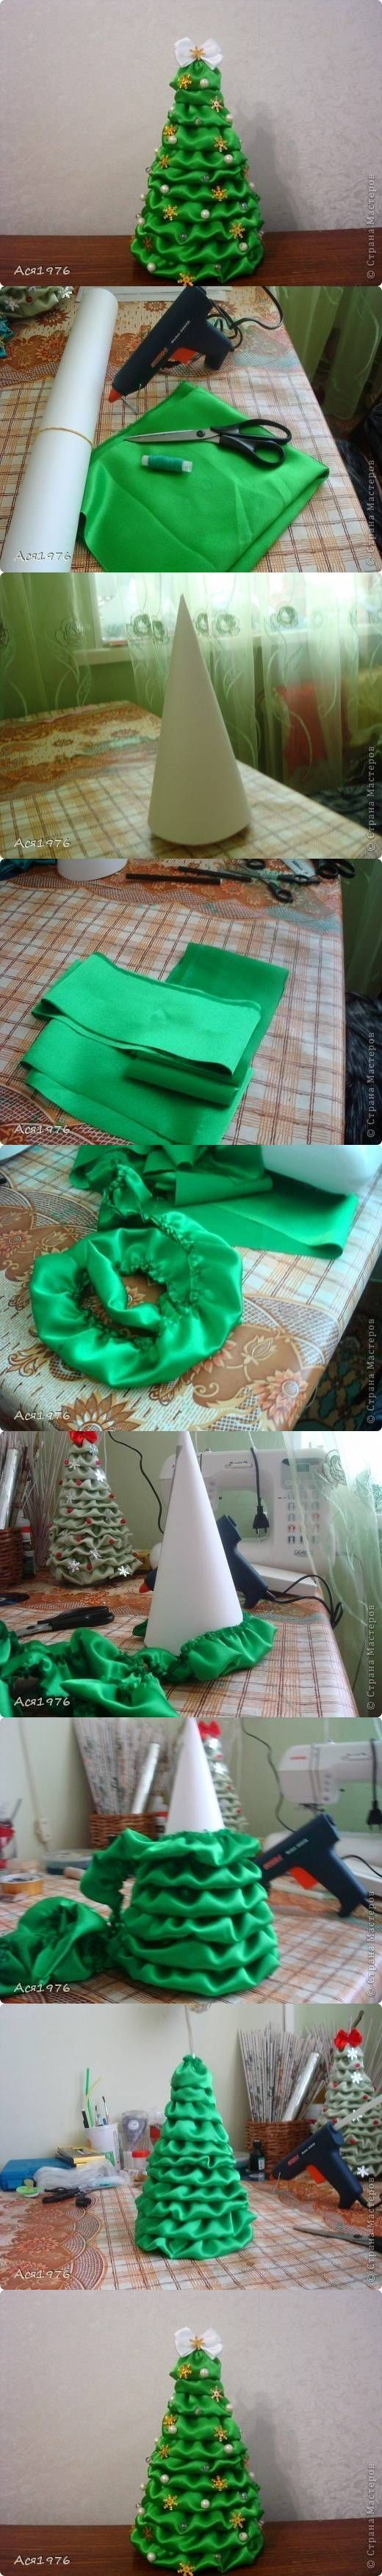 DIY Fabric Christmas Tree